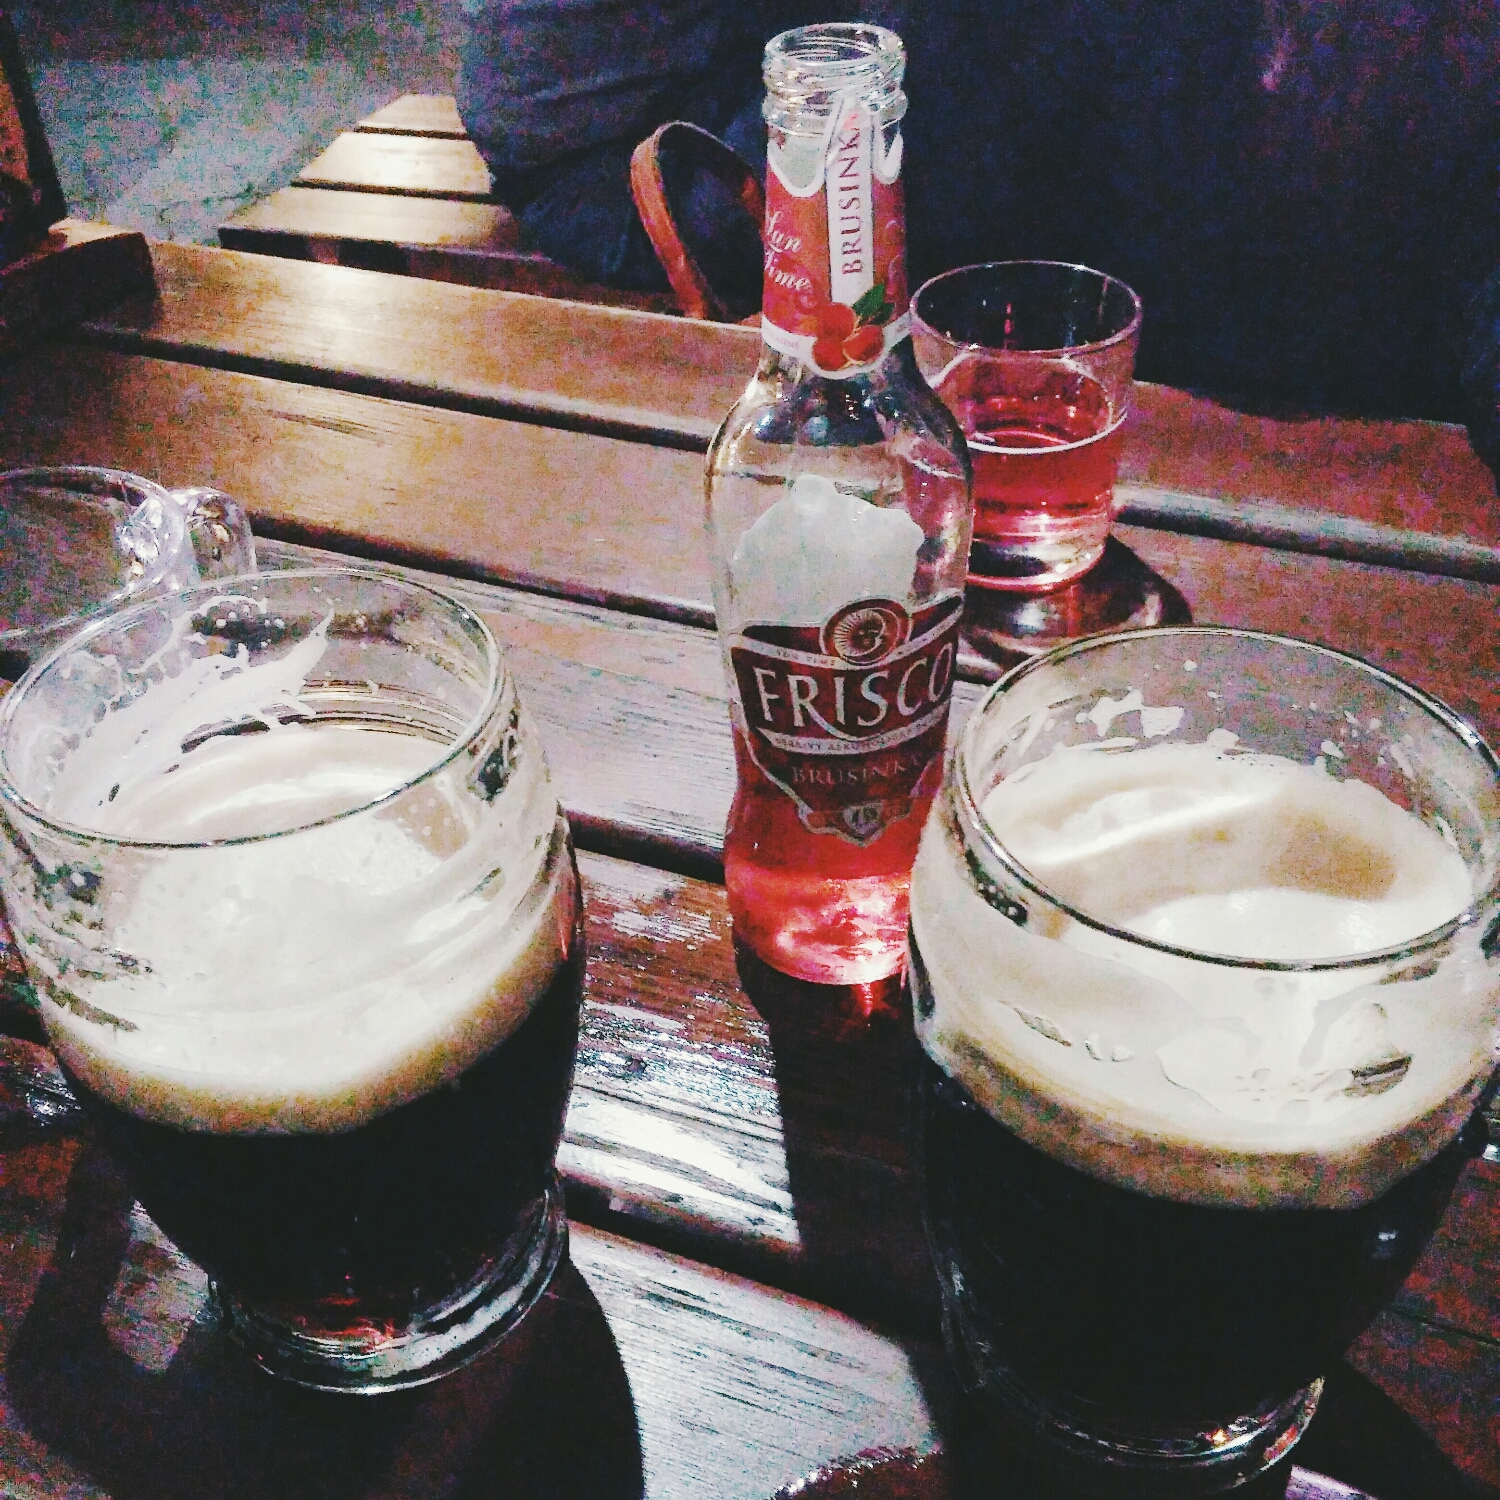 {Dark beers are my best friend after this trip.}